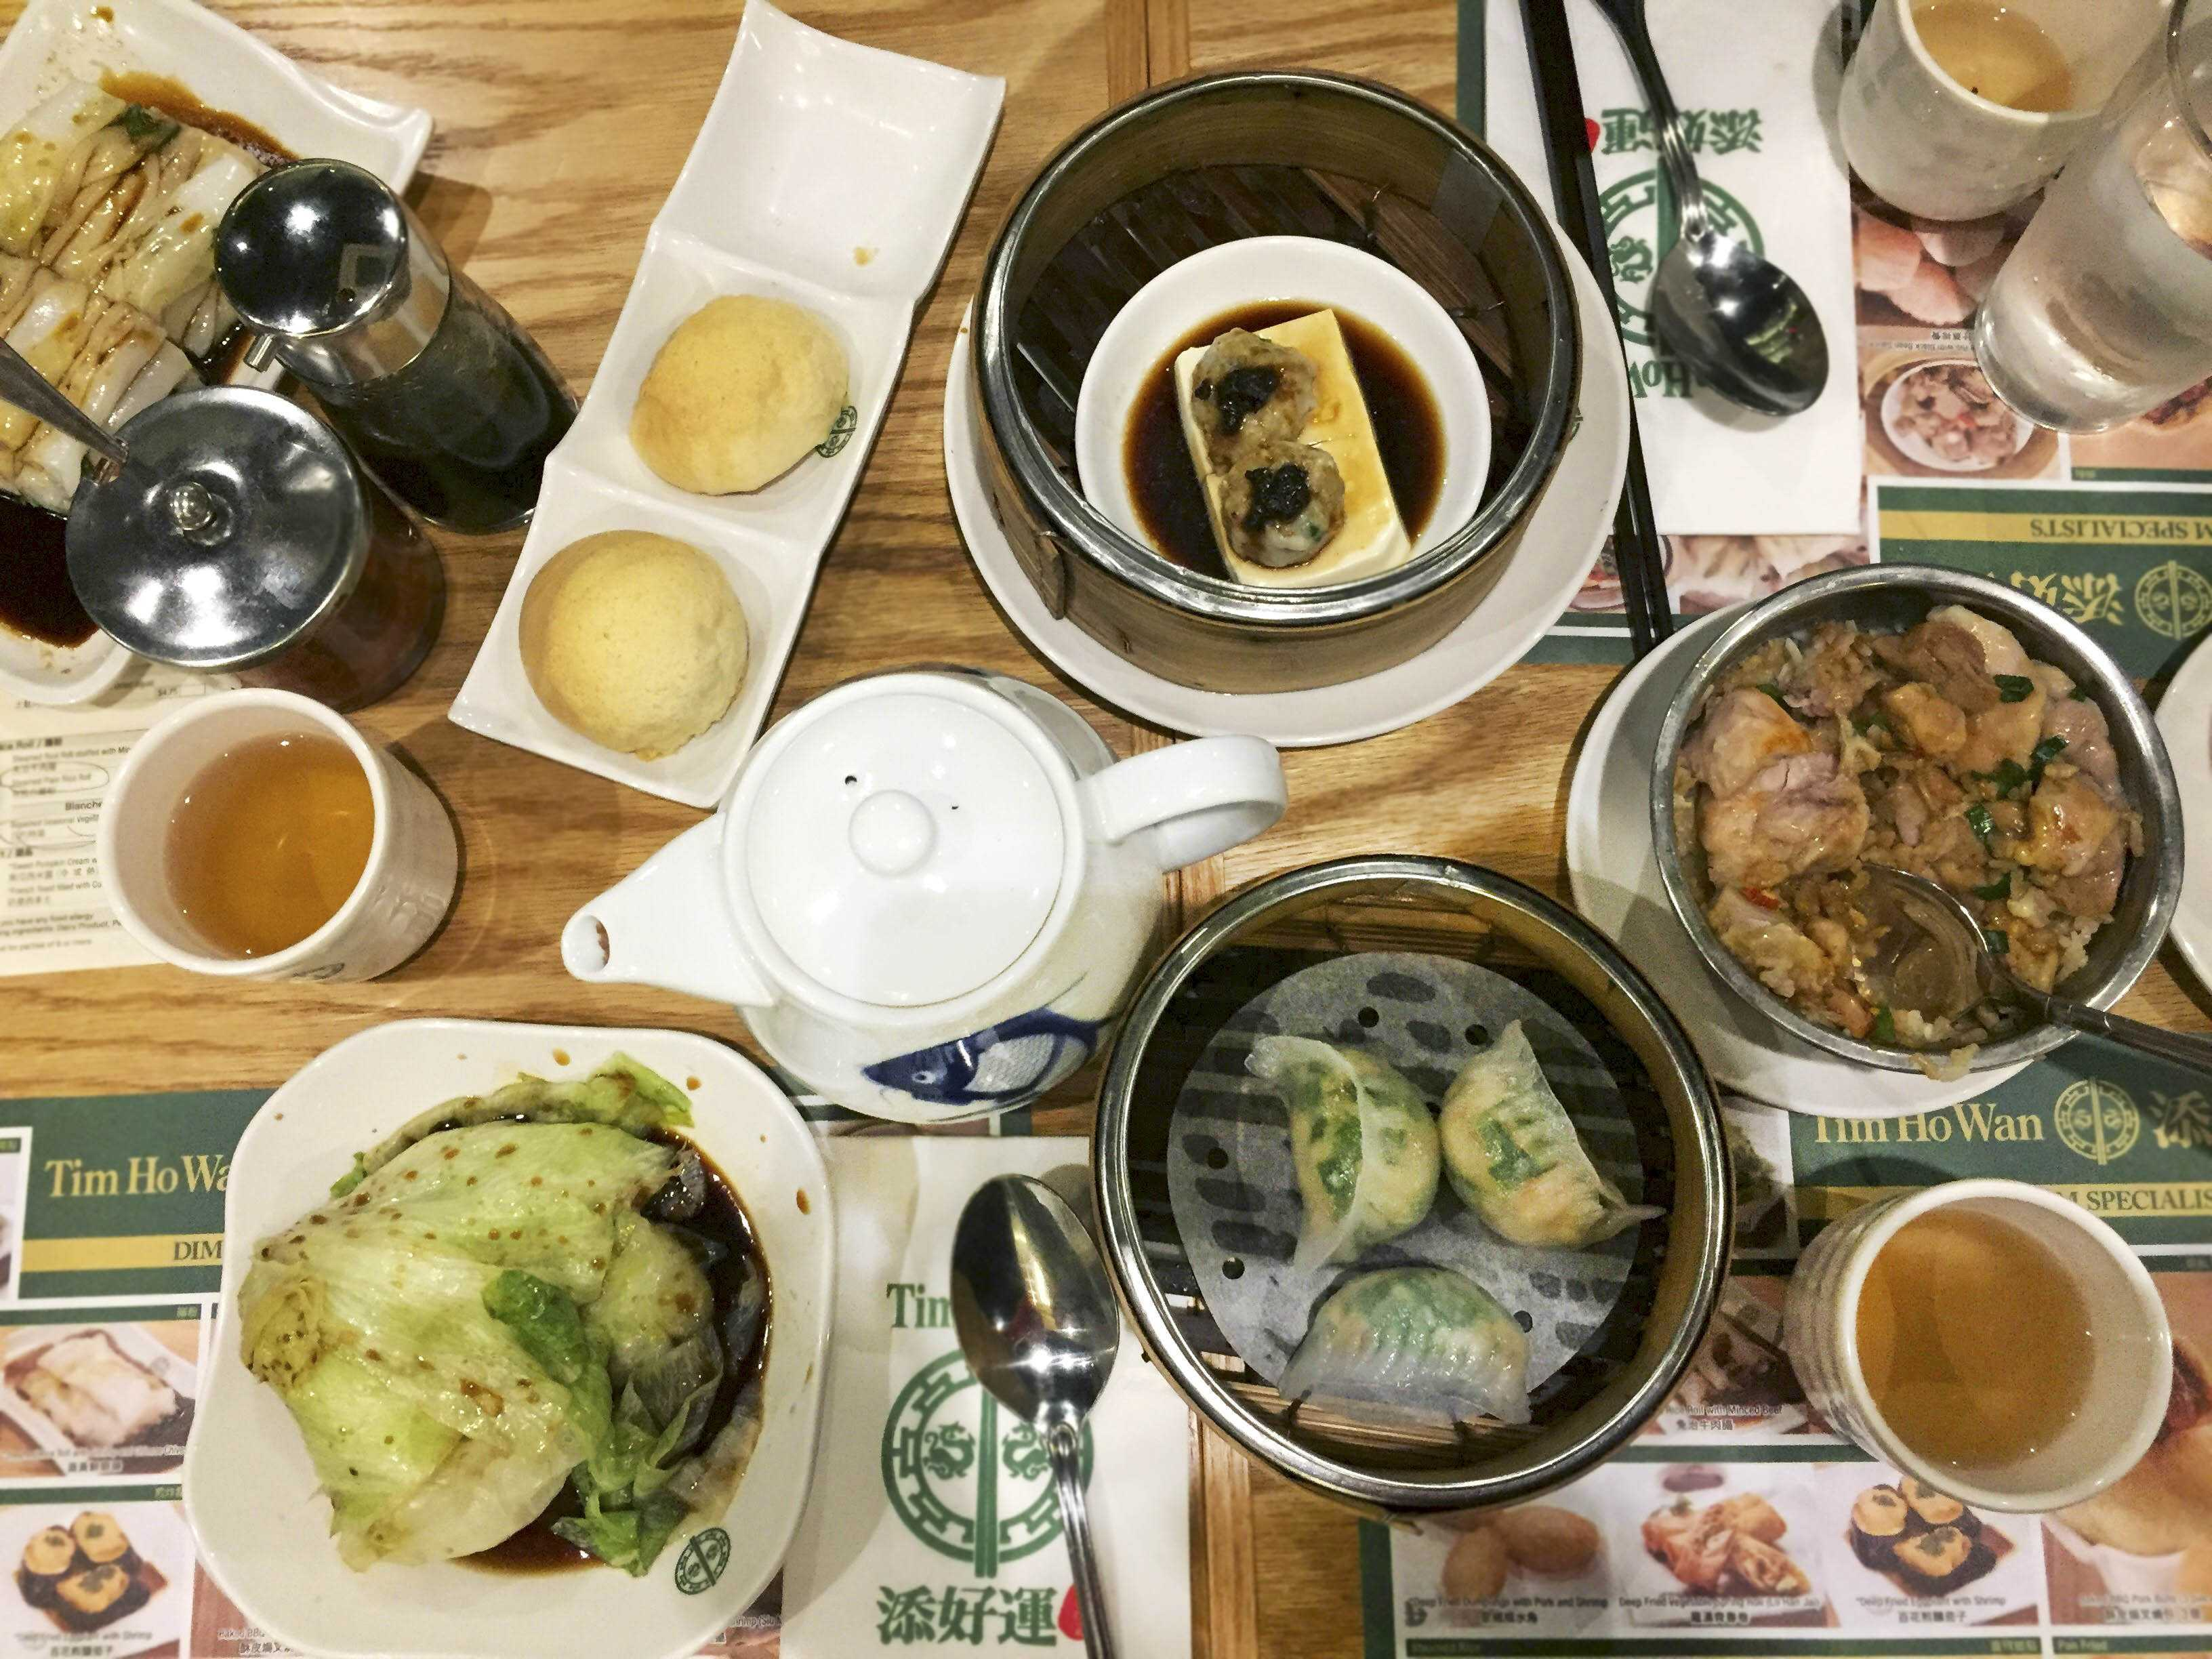 For many, eating at a Michelin-starred restaurant seems like an unrealistic goal considering the often astronomical prices.  Thankfully, Tim Ho Wan, the cheapest Michelin-starred restaurant in the world, is located nearby at 85 Fourth Ave.